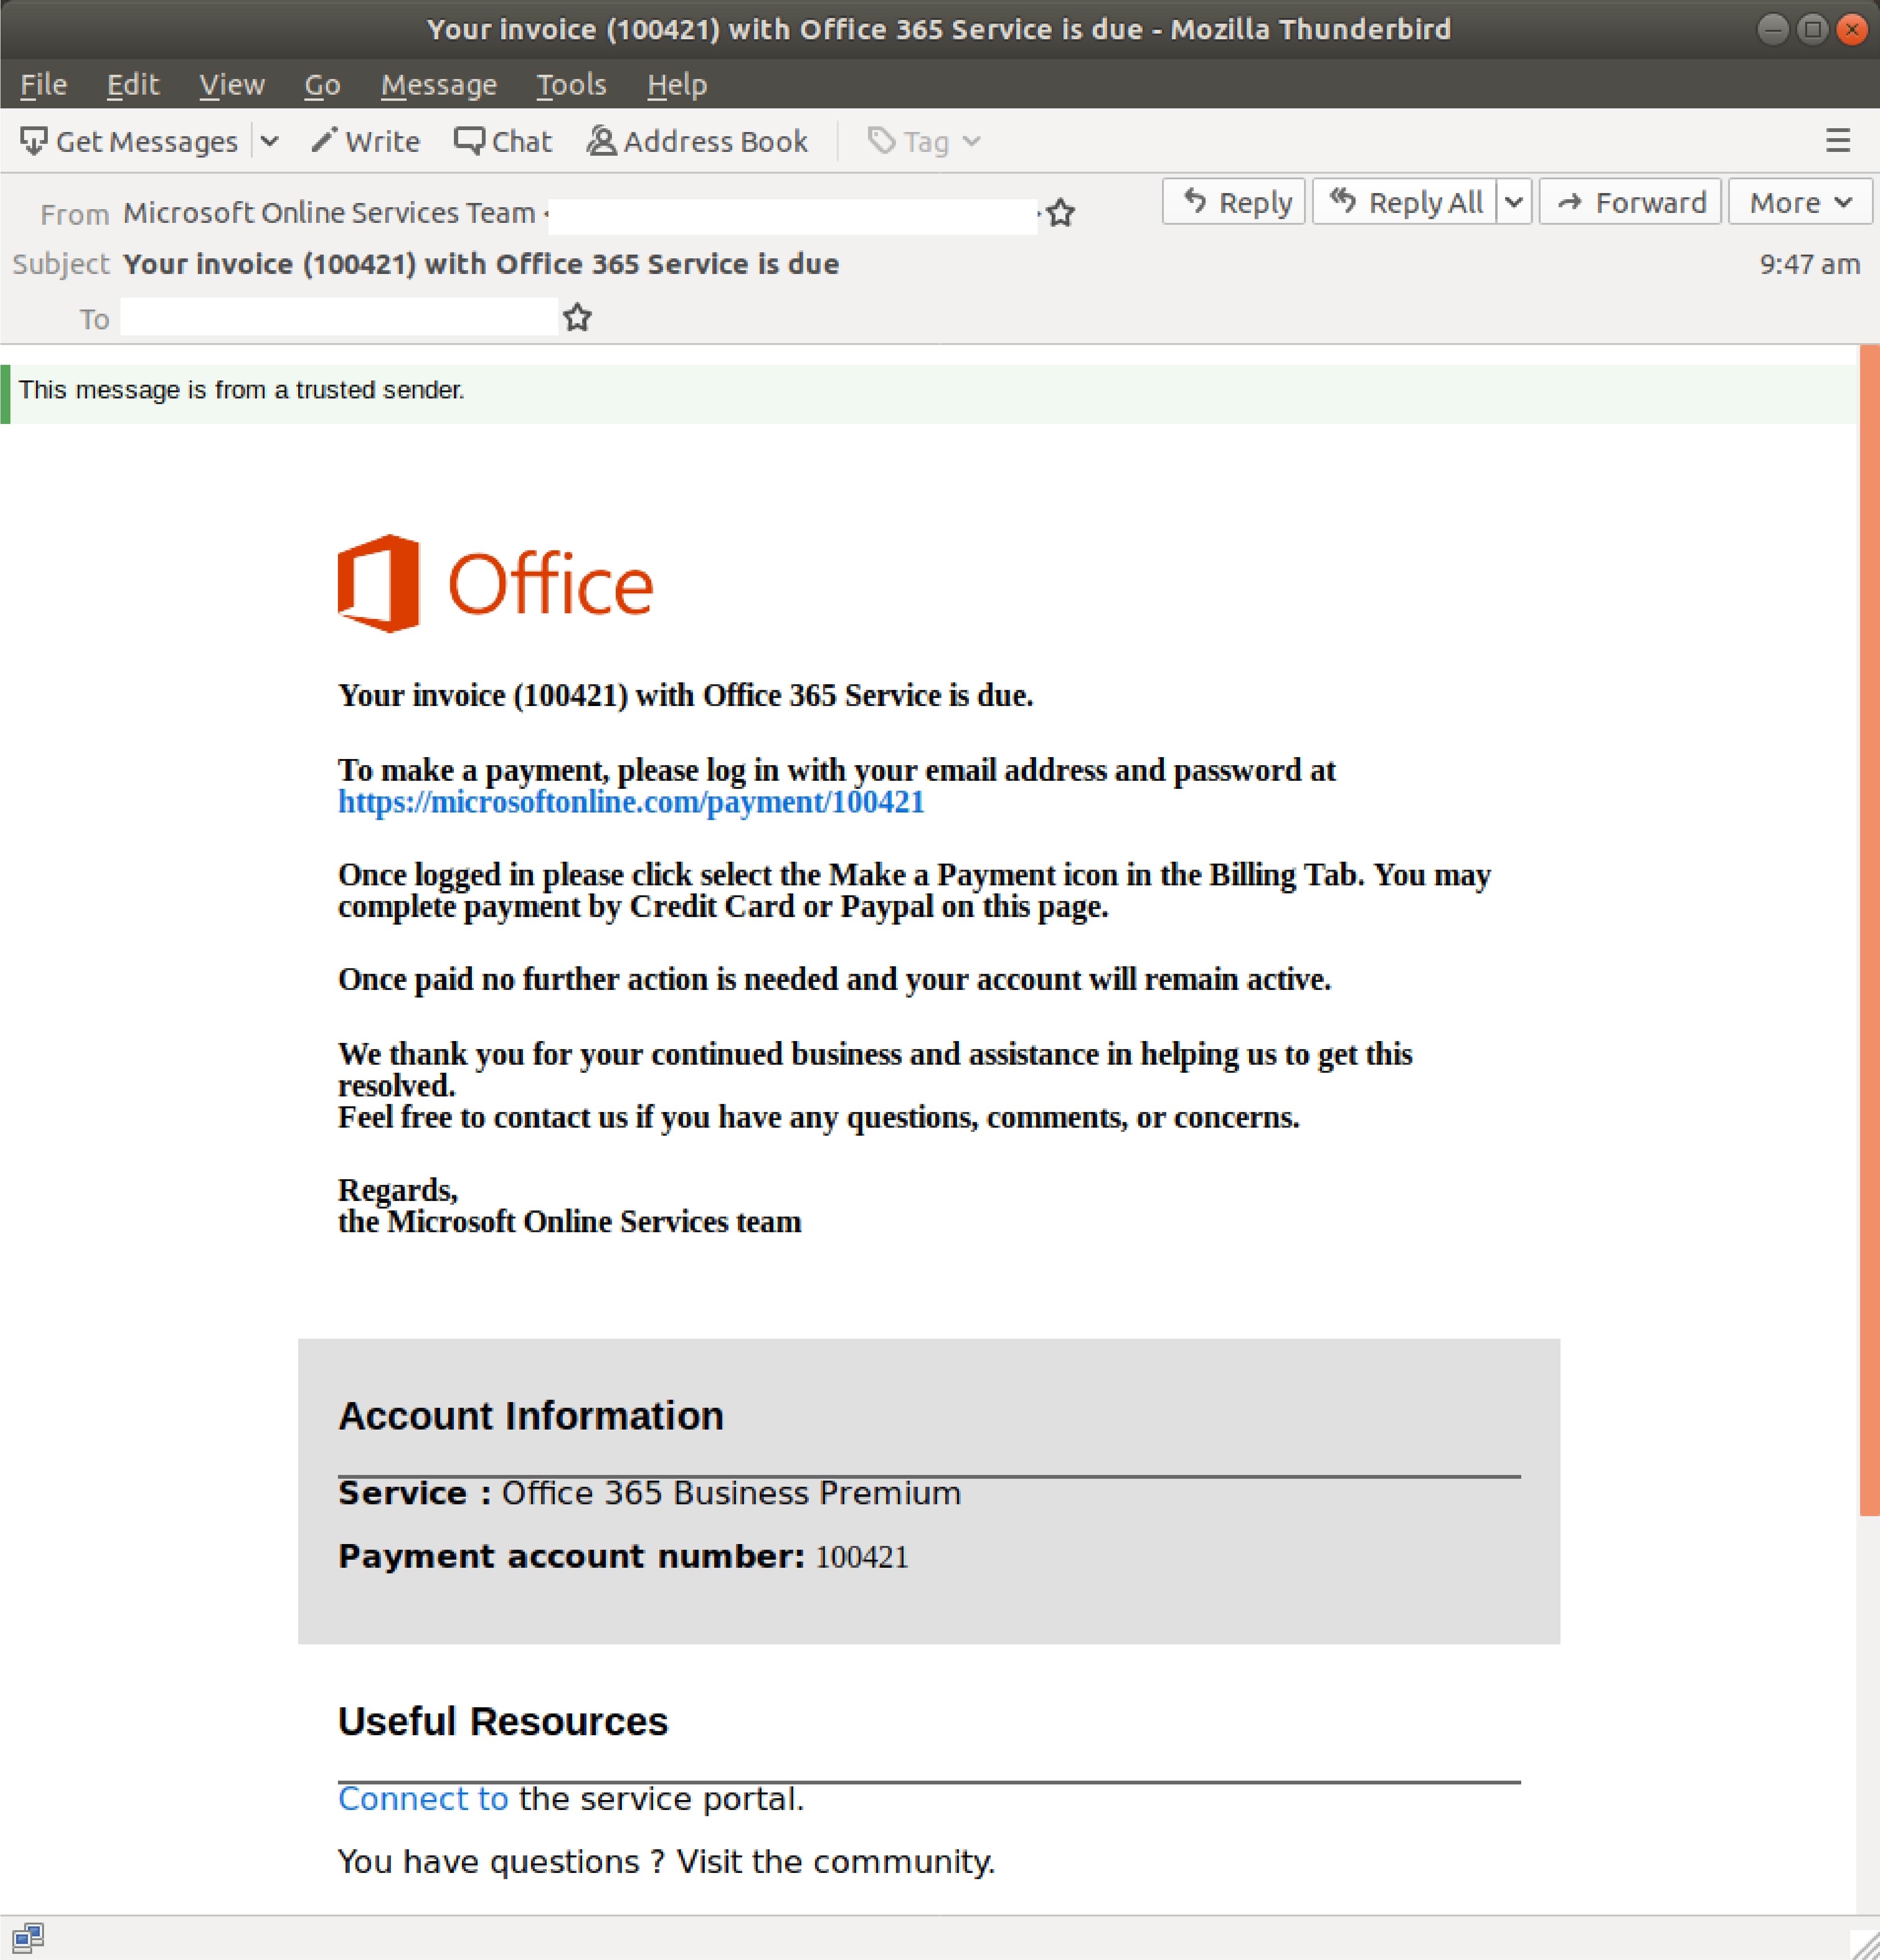 Think Twice Before Paying This Invoice Supposedly From Office 365